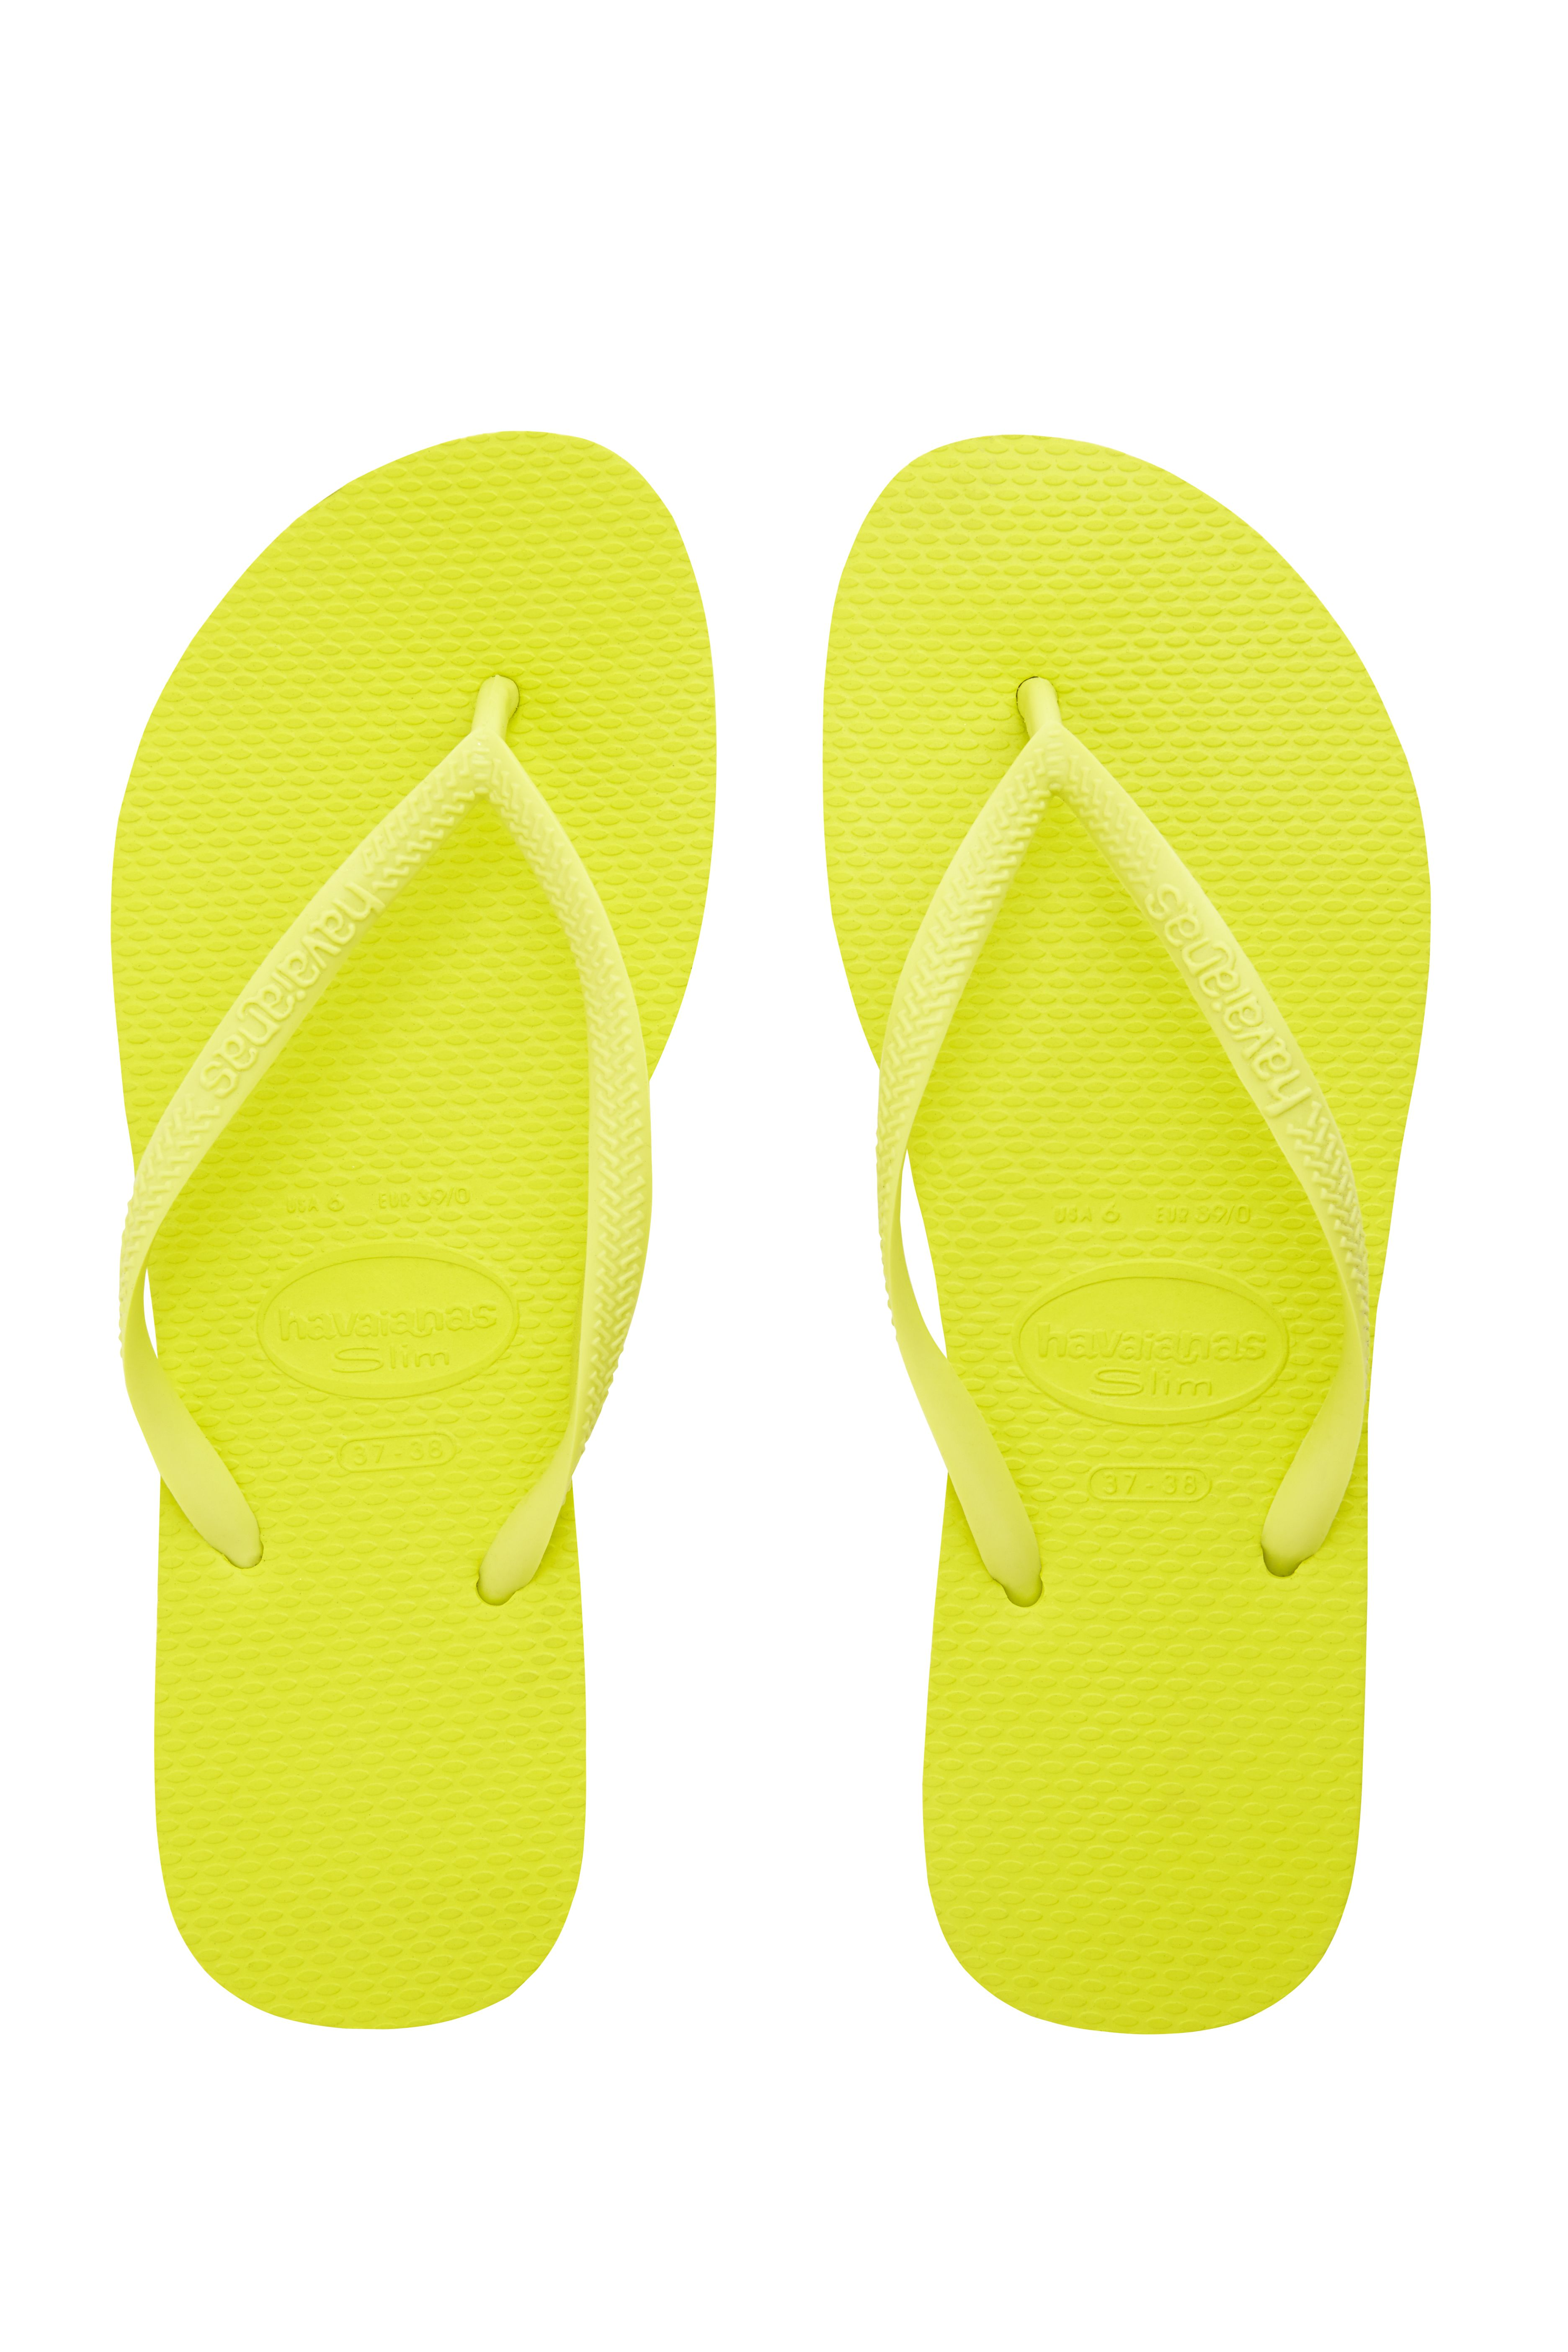 6ee20f7ef46b Introducing Havaianas for J. Crew! Check out exclusive colors (like fresh  kiwi) now available in store and online!